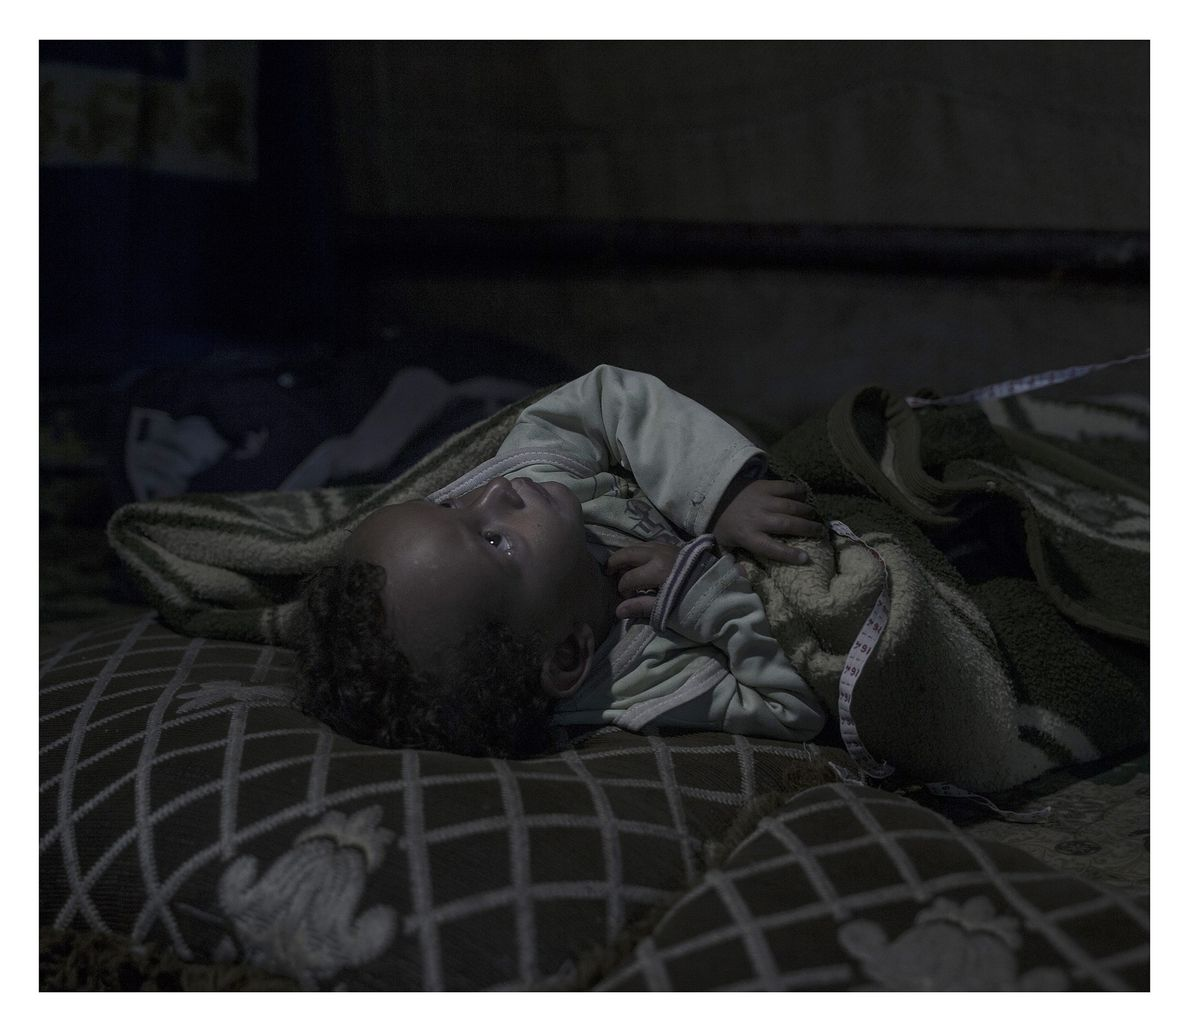 Amir was born a refugee. Although he is almost two years old, his mother says he ...